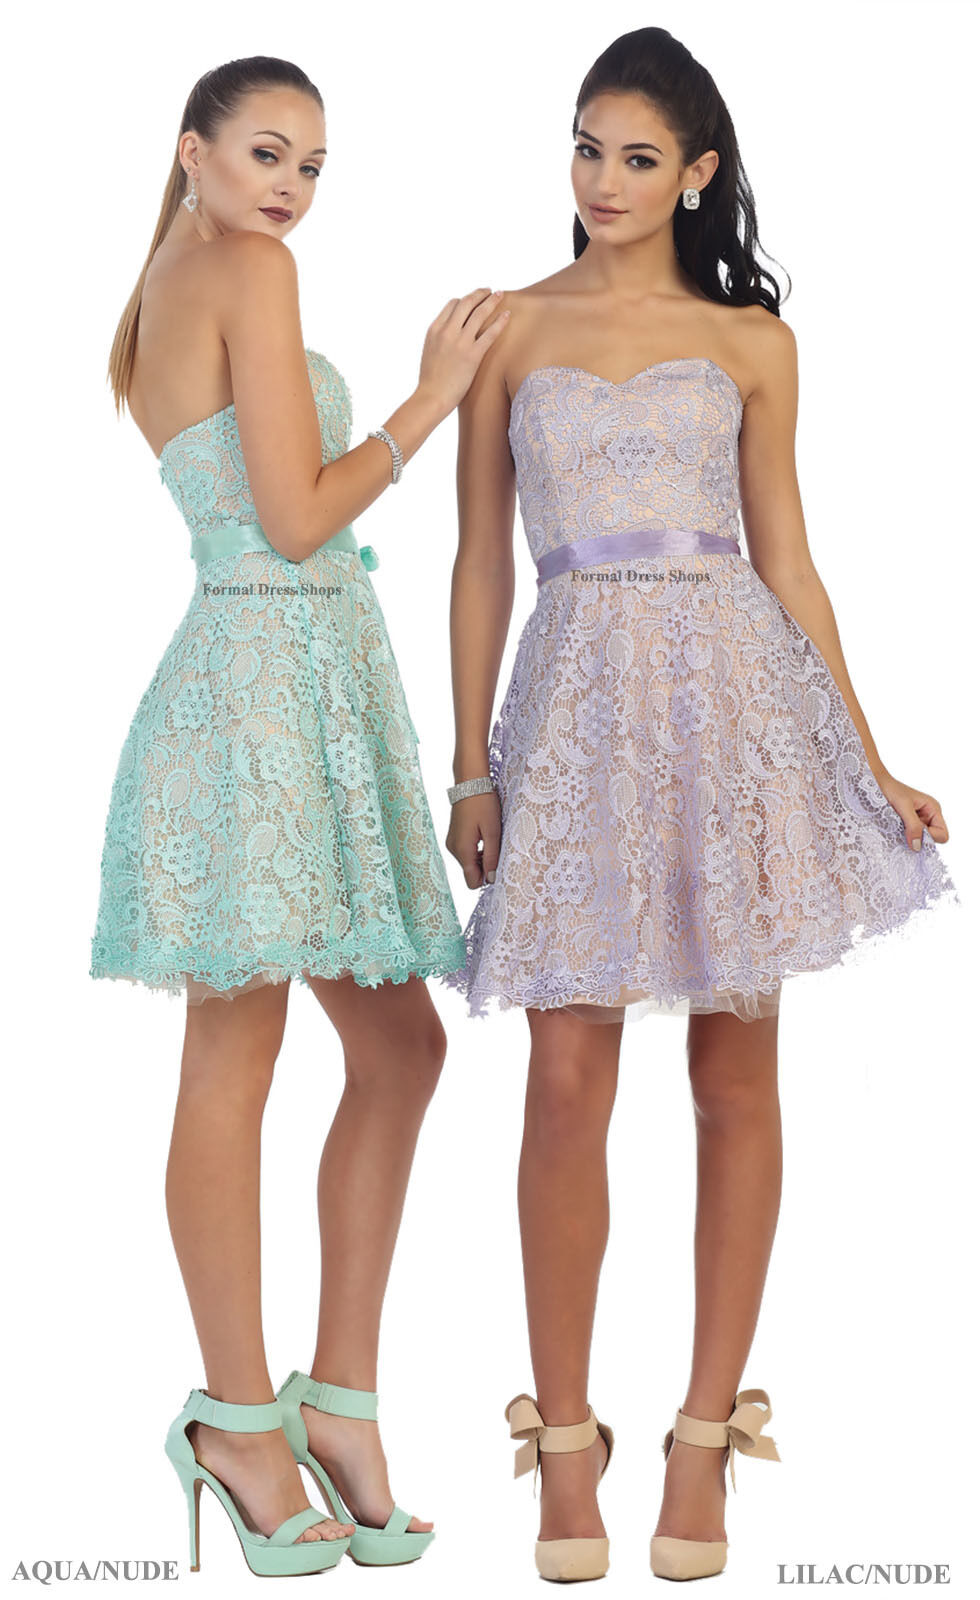 a1a0a8033a3b Details about SALE ! SHORT PROM SEMI FORMAL BIRTHDAY PARTY COCKTAIL  HOMECOMING DRESS UNDER 100